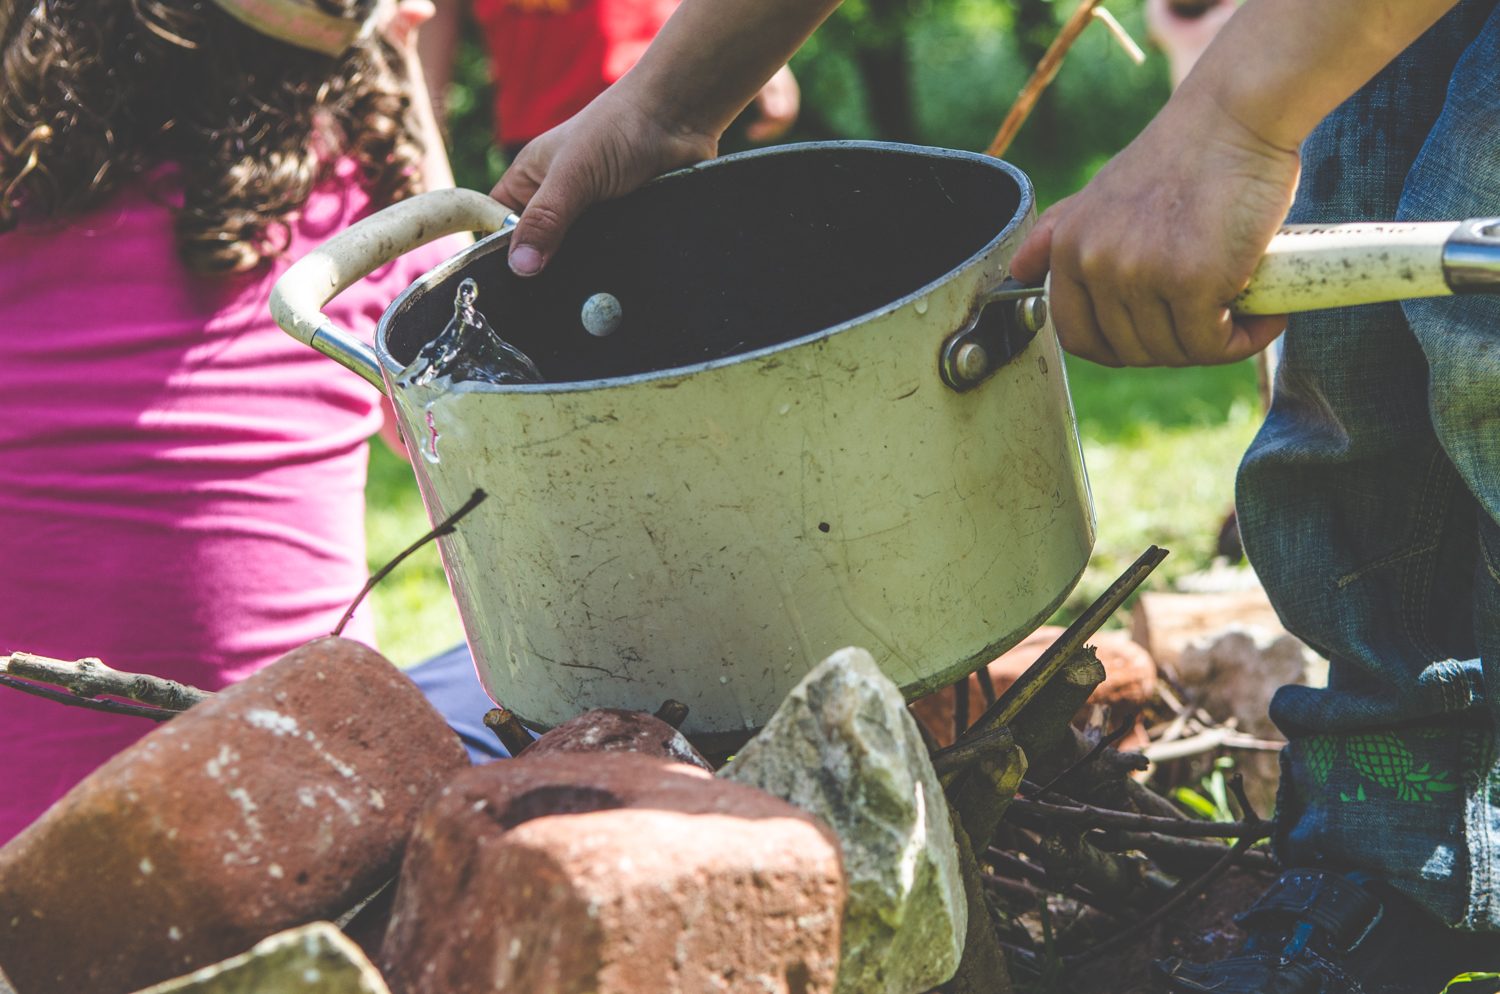 """Quick! Here comes the Wolf! Get the pan on the fire!""  This imaginative play cemented co-operative learning, recall skills, creativity and communication to name but a few of the rich development pickings from these sessions."